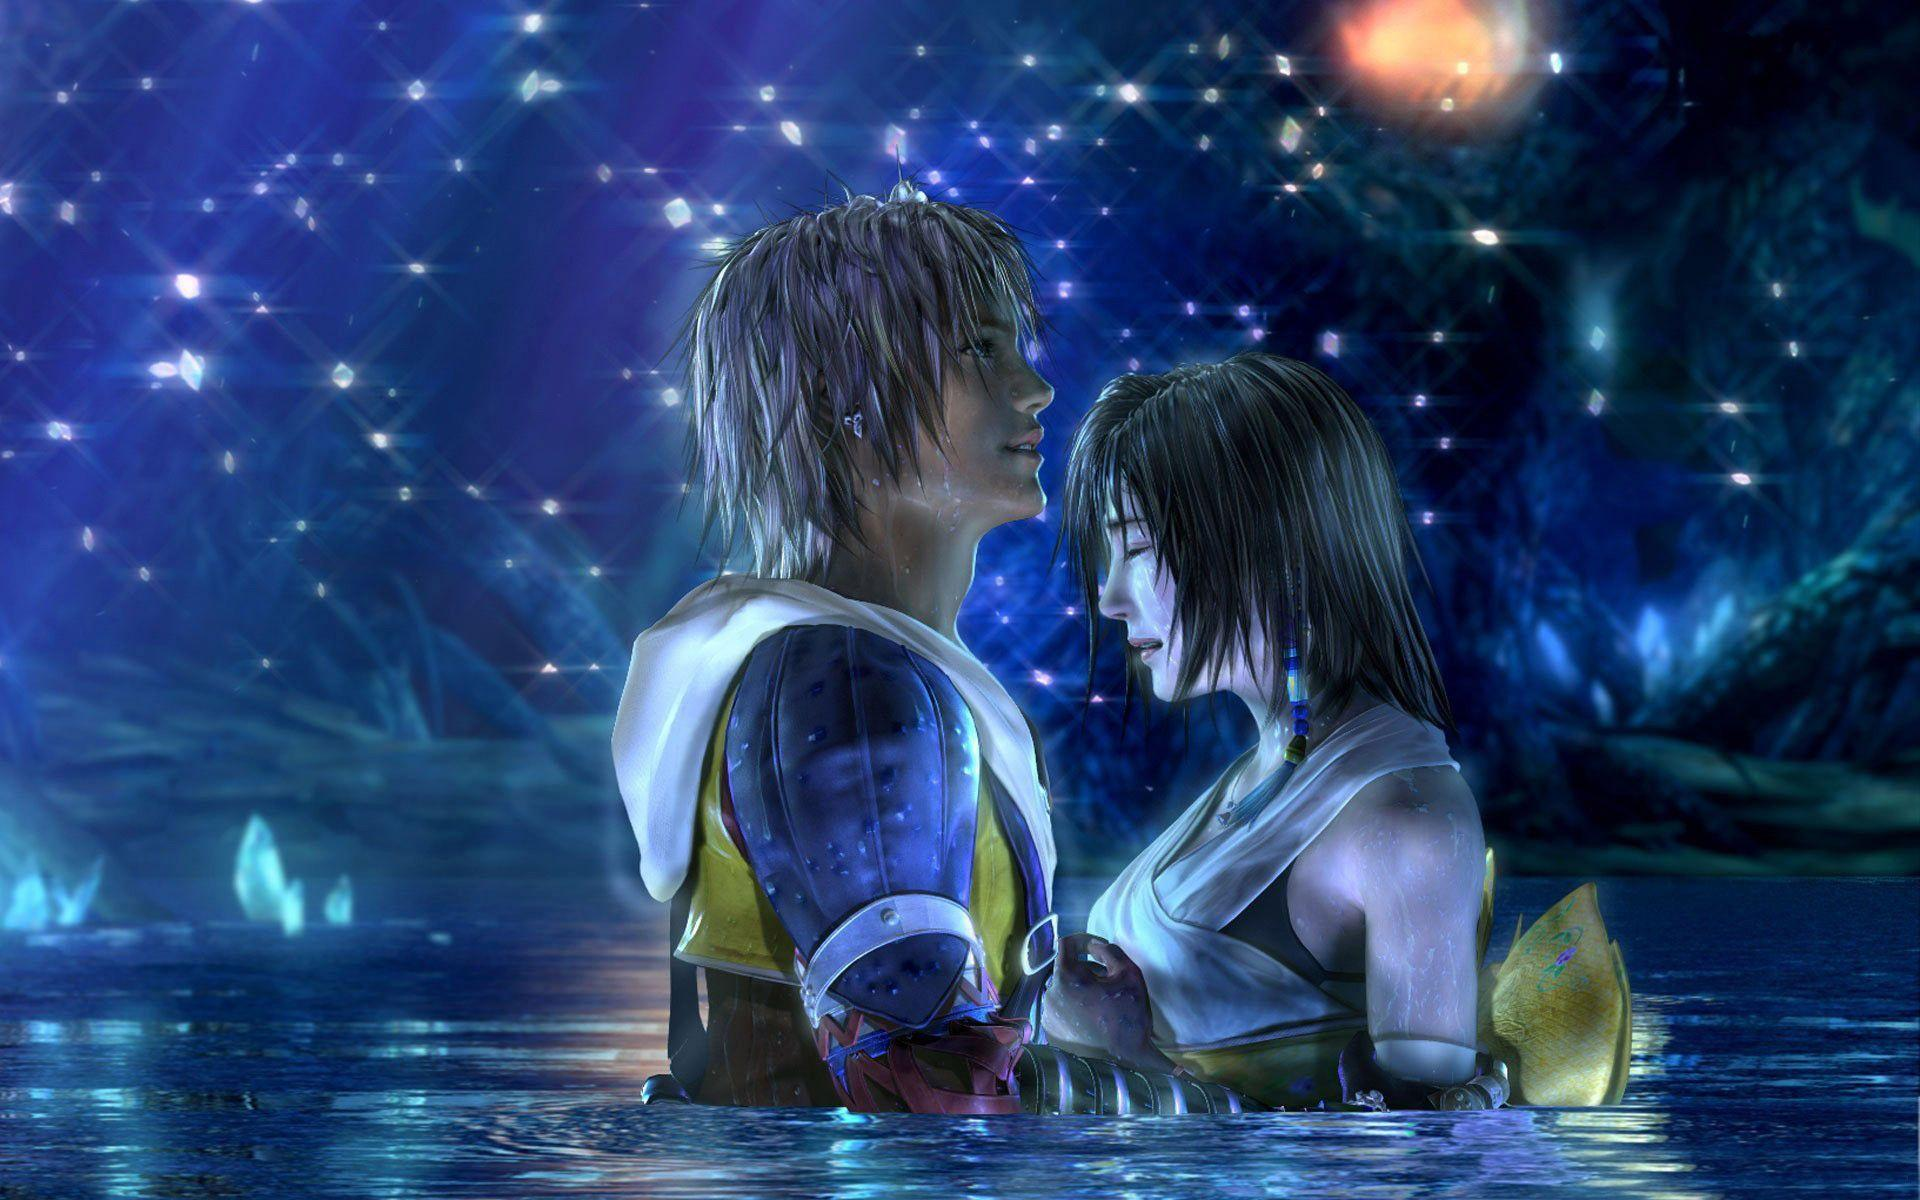 Final Fantasy X Wallpapers